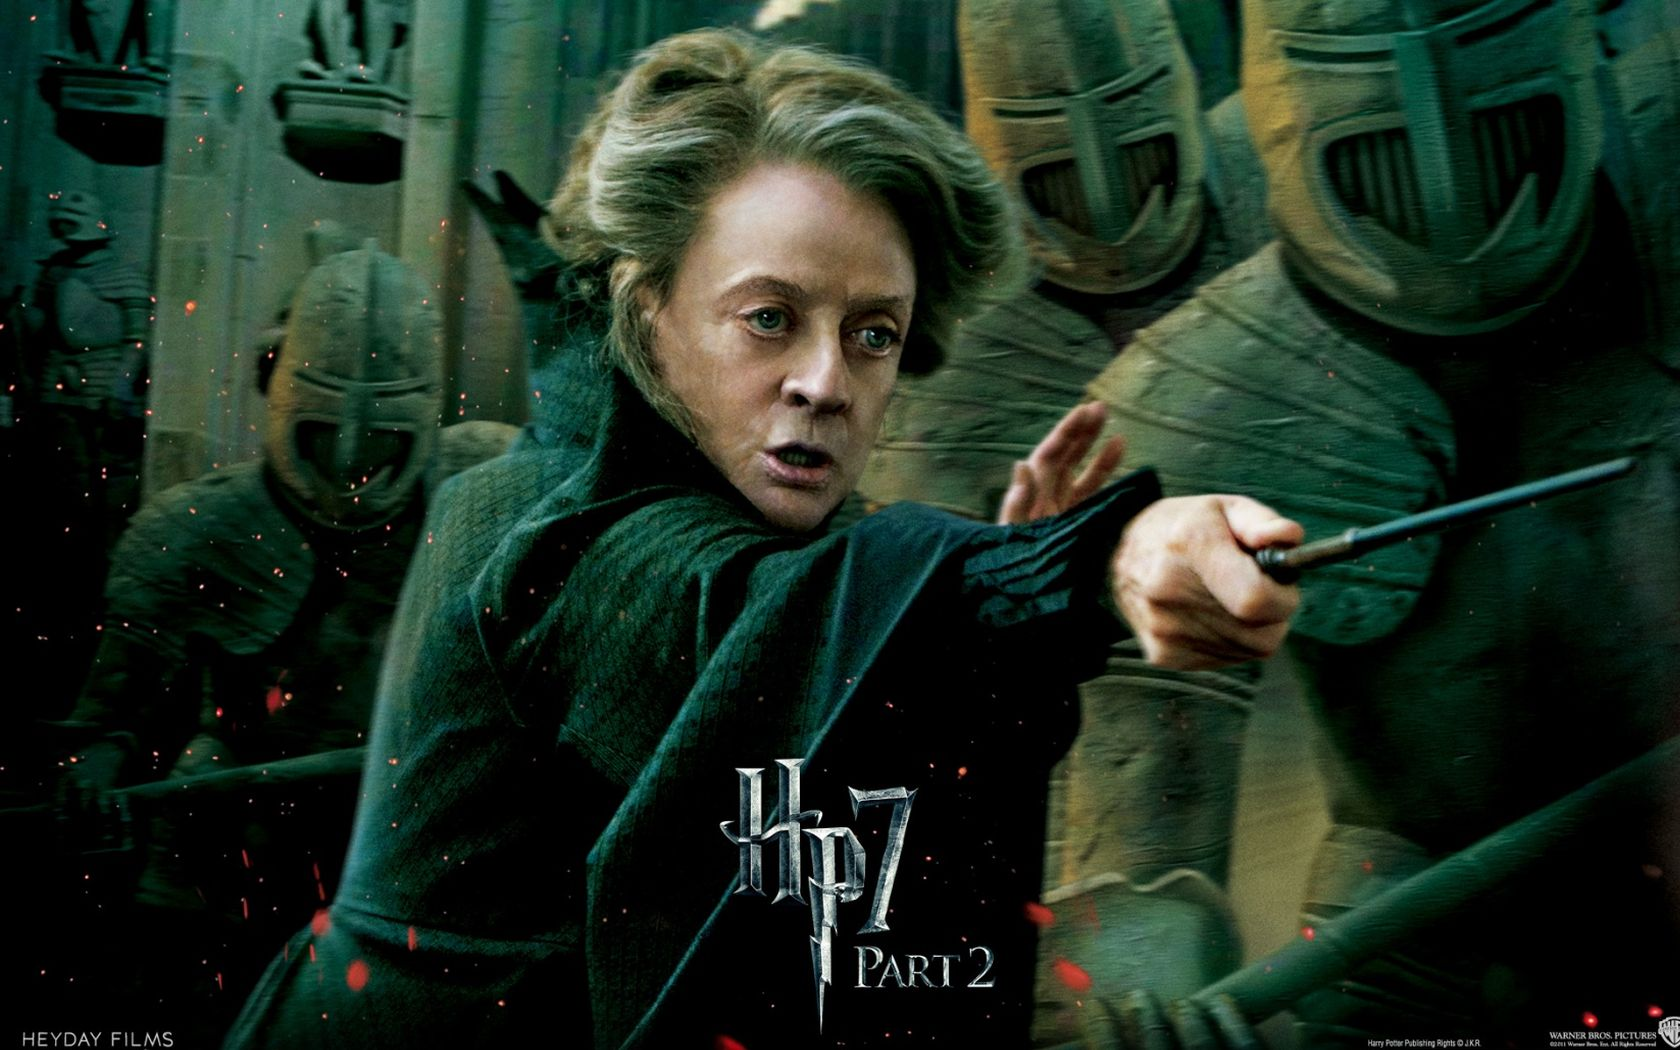 harry_potter_and_the_deathly_hallows_part_2_mcgonagall-wallpaper-1680x1050.jpg